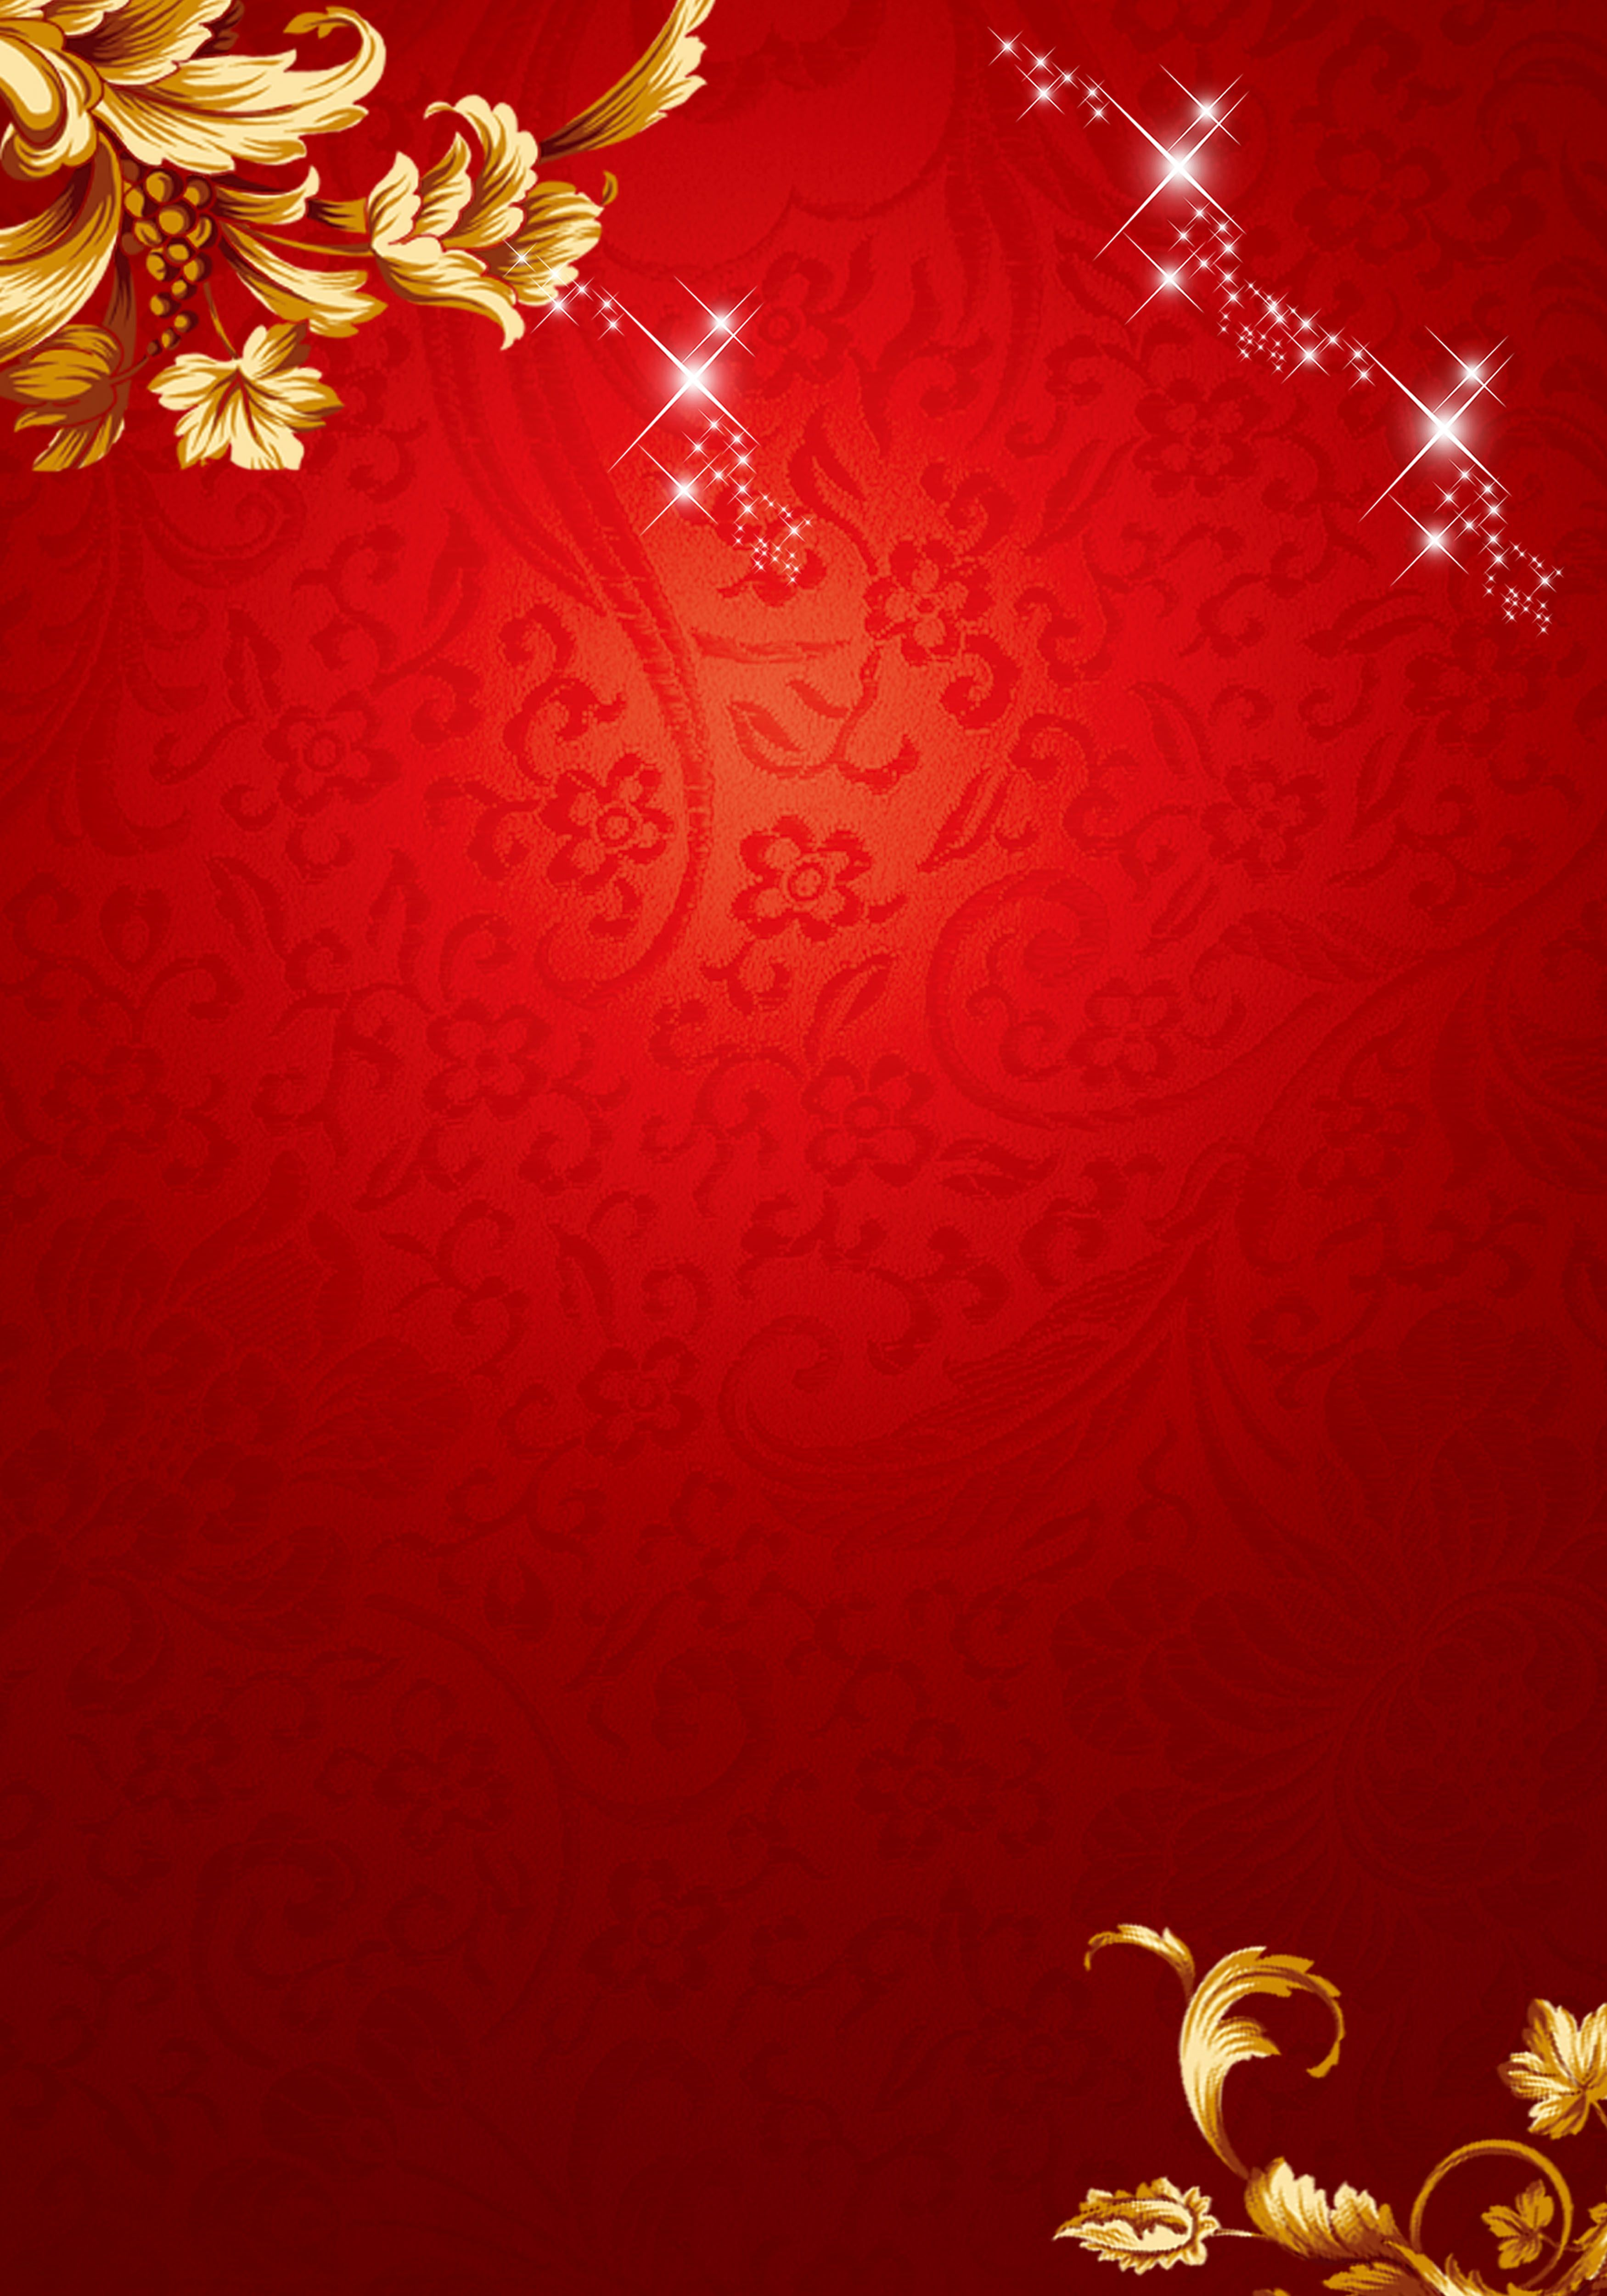 Red Wedding Theme Background